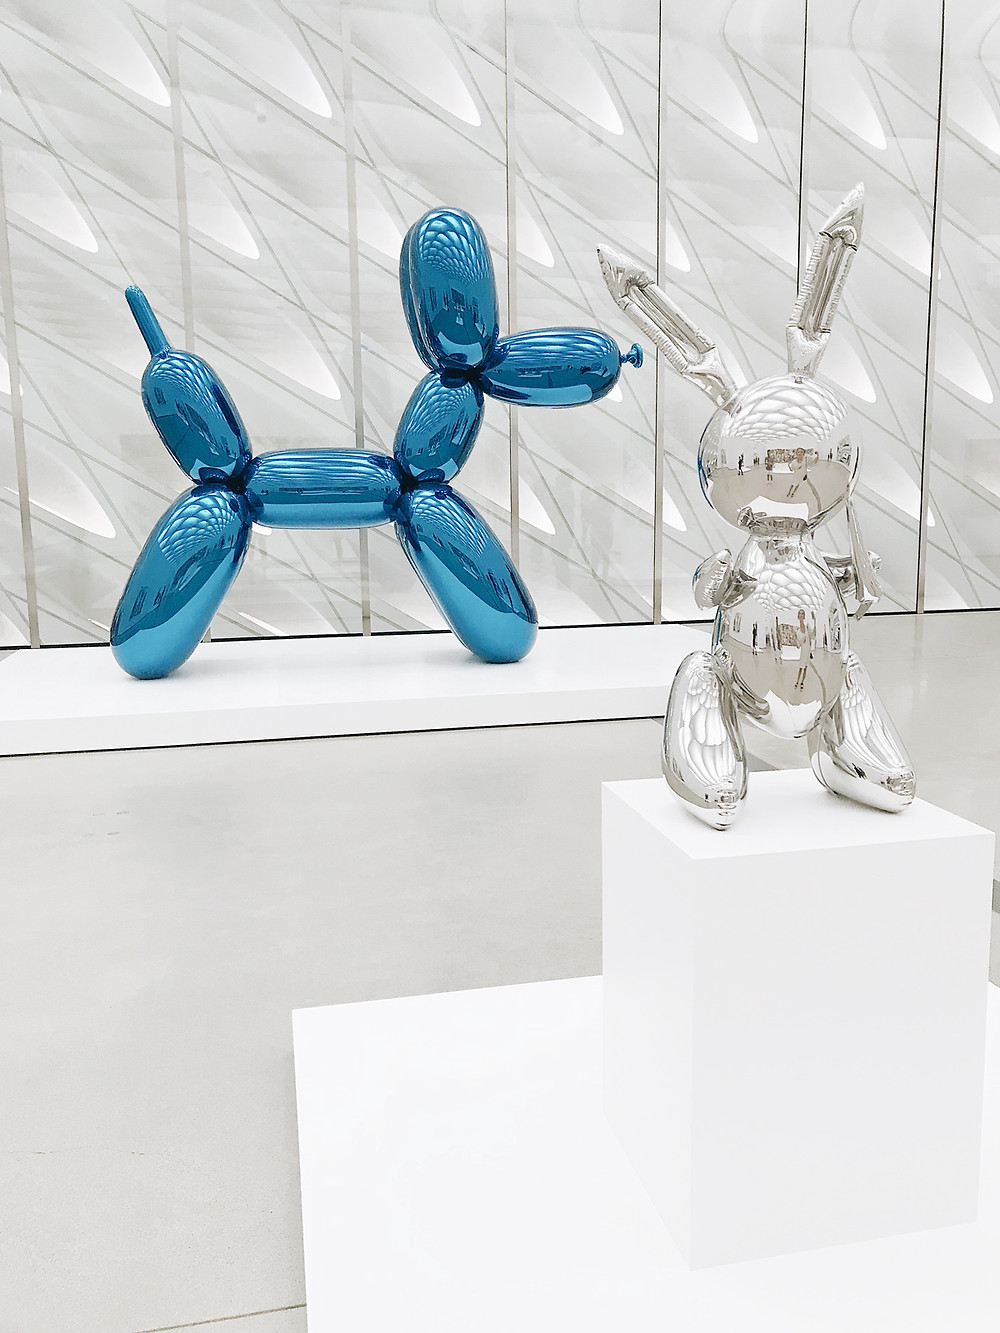 Jeff Koons Artworks / Photo by Derick McKinney on Unsplash